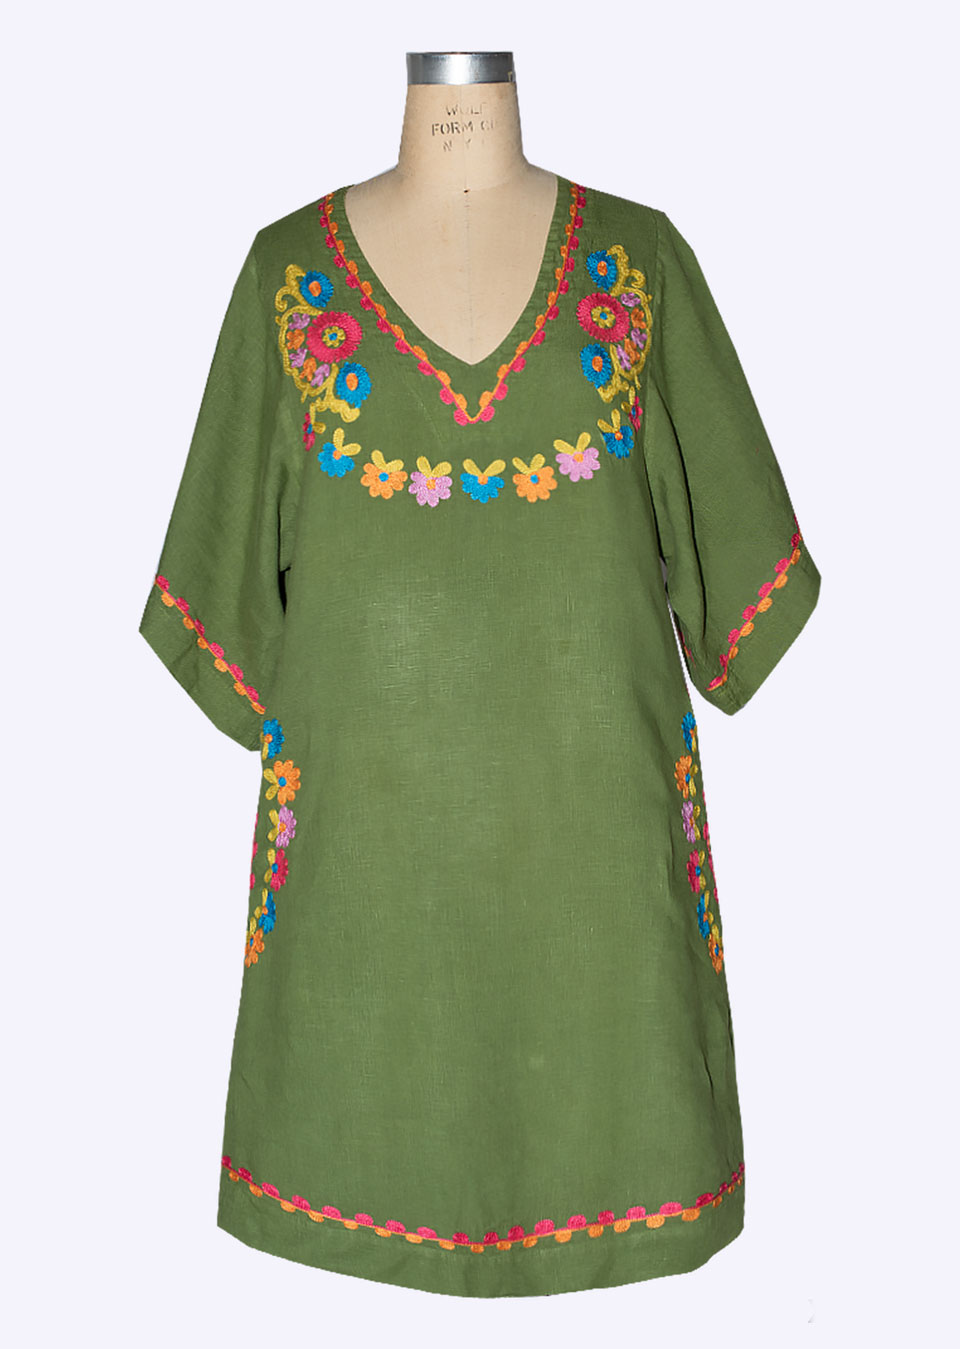 Crewel Embroidered Dress from Uncle Frank